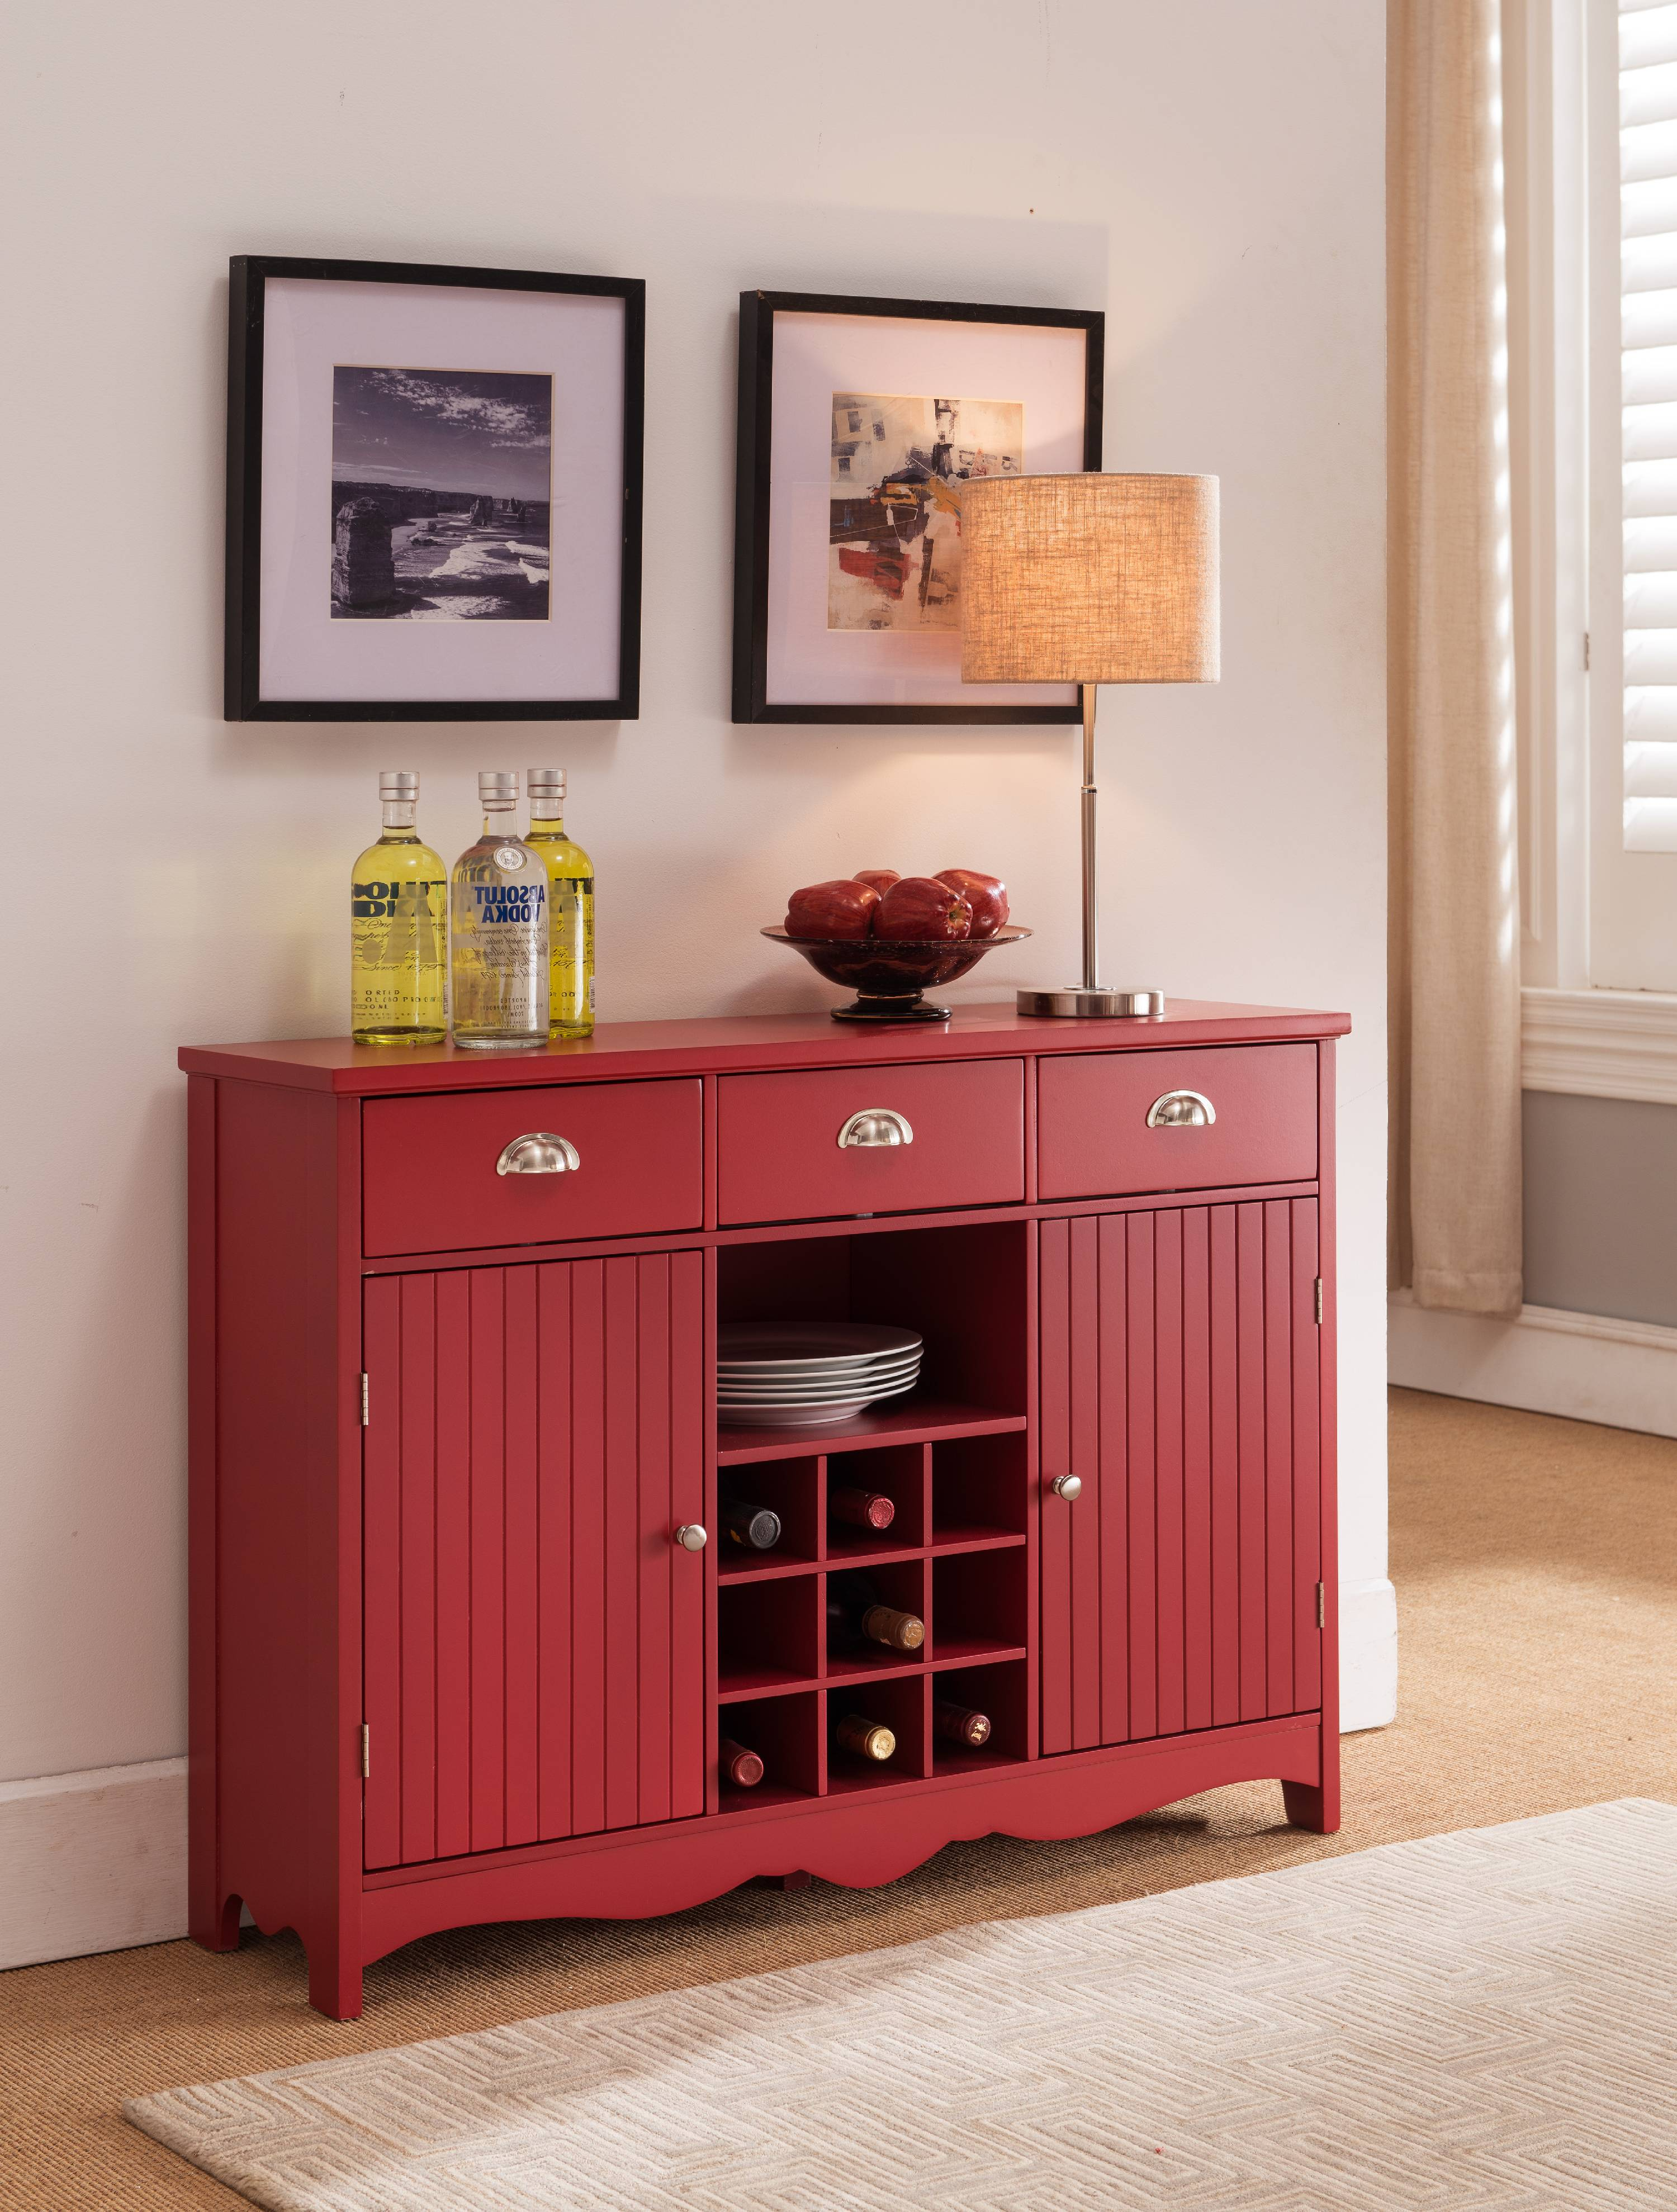 Red Wood Contemporary Wine Rack Sideboard Buffet Display Console Table With  Storage Drawers, Glass Cabinet Part 85